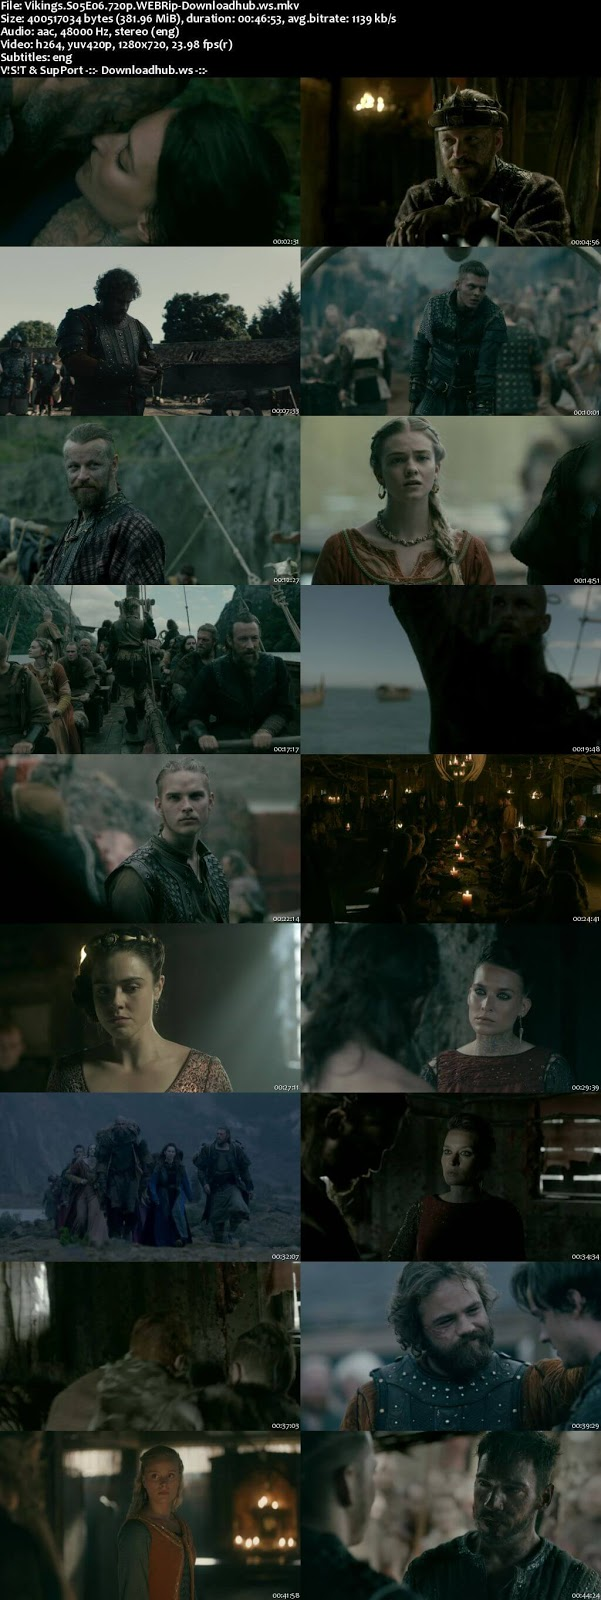 Vikings S05E06 380MB WEBRip 720p ESubs